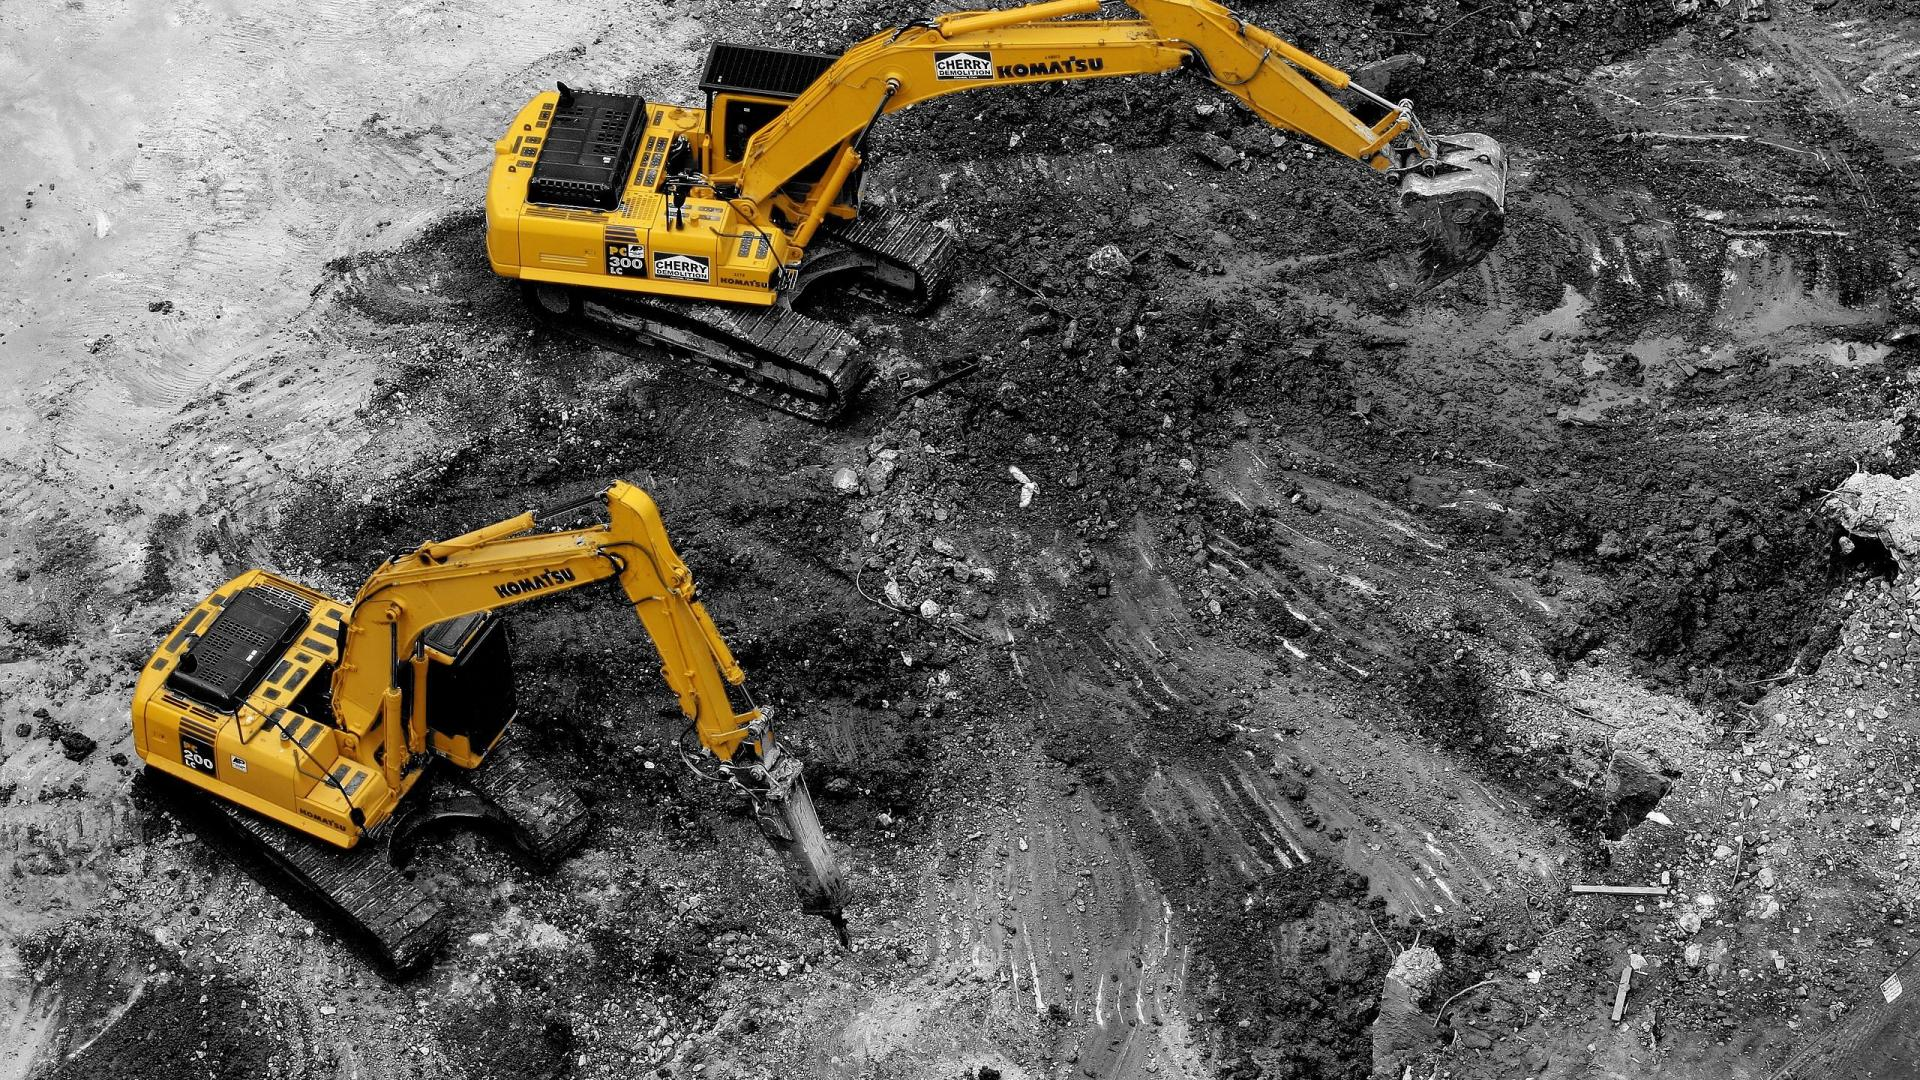 50 Construction Wallpapers For Download in High 1920x1080